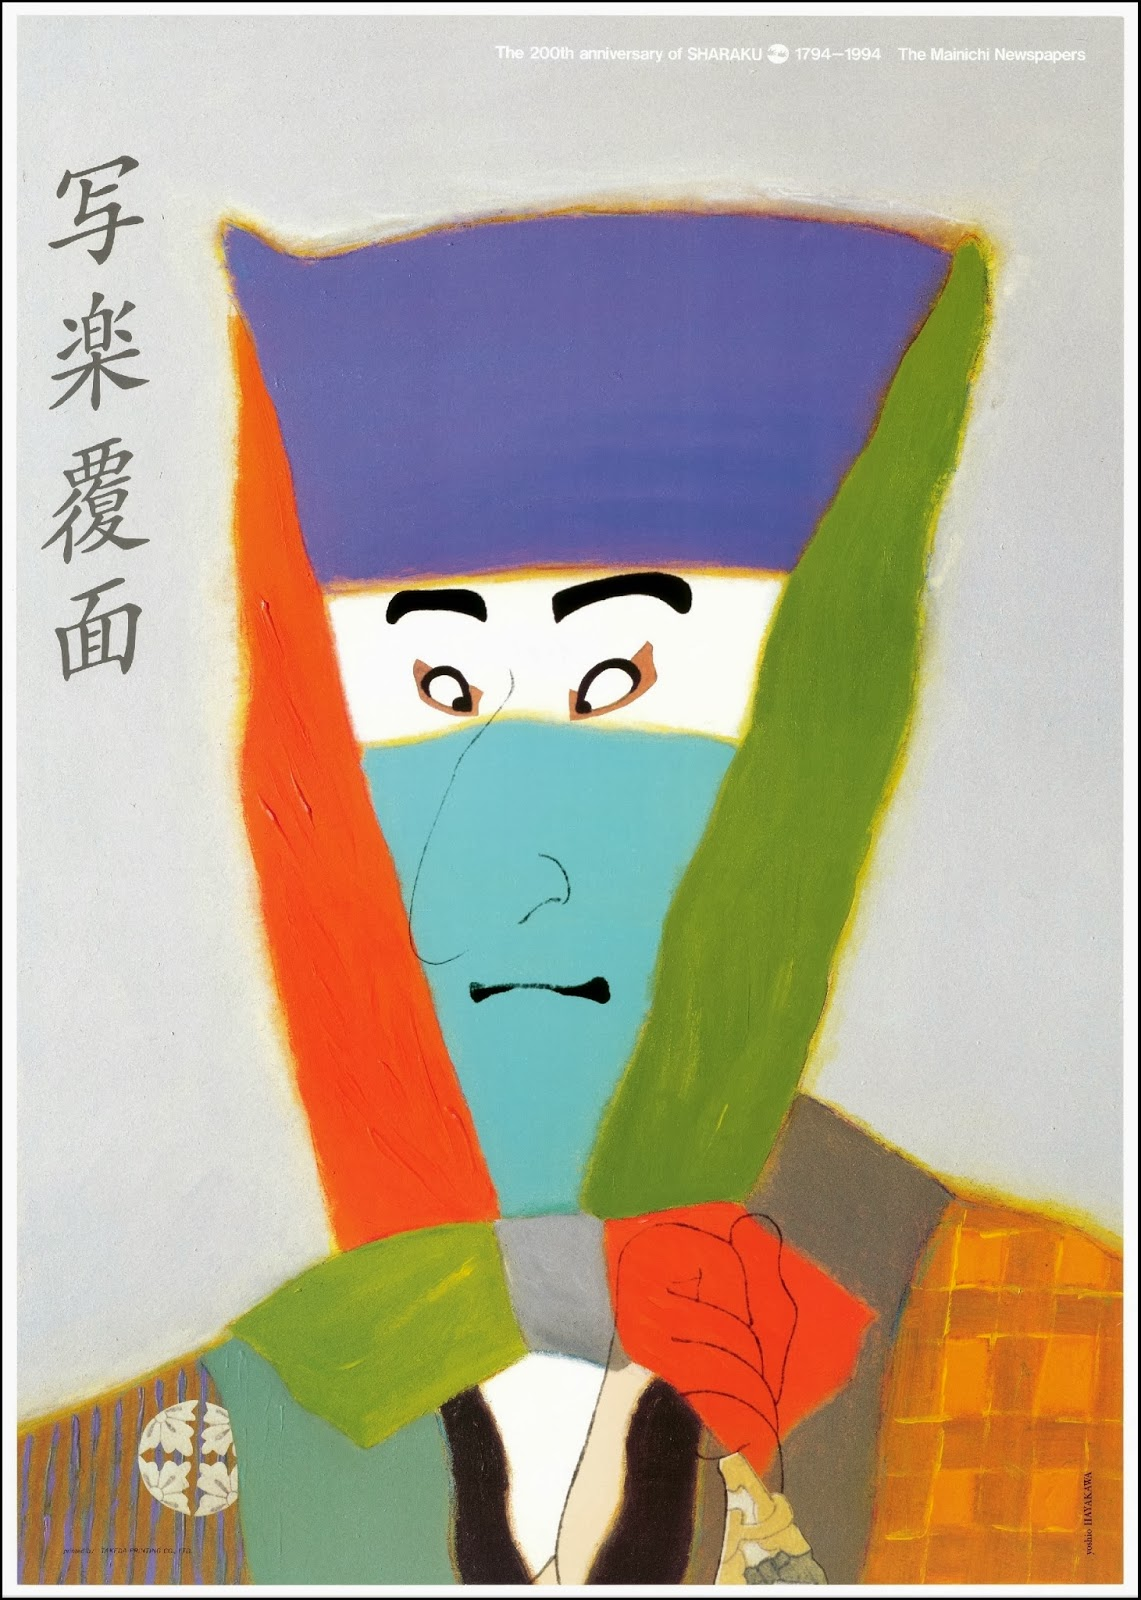 colourful Japanese poster featuring embellished render of grimacing Japanese man in head scarf